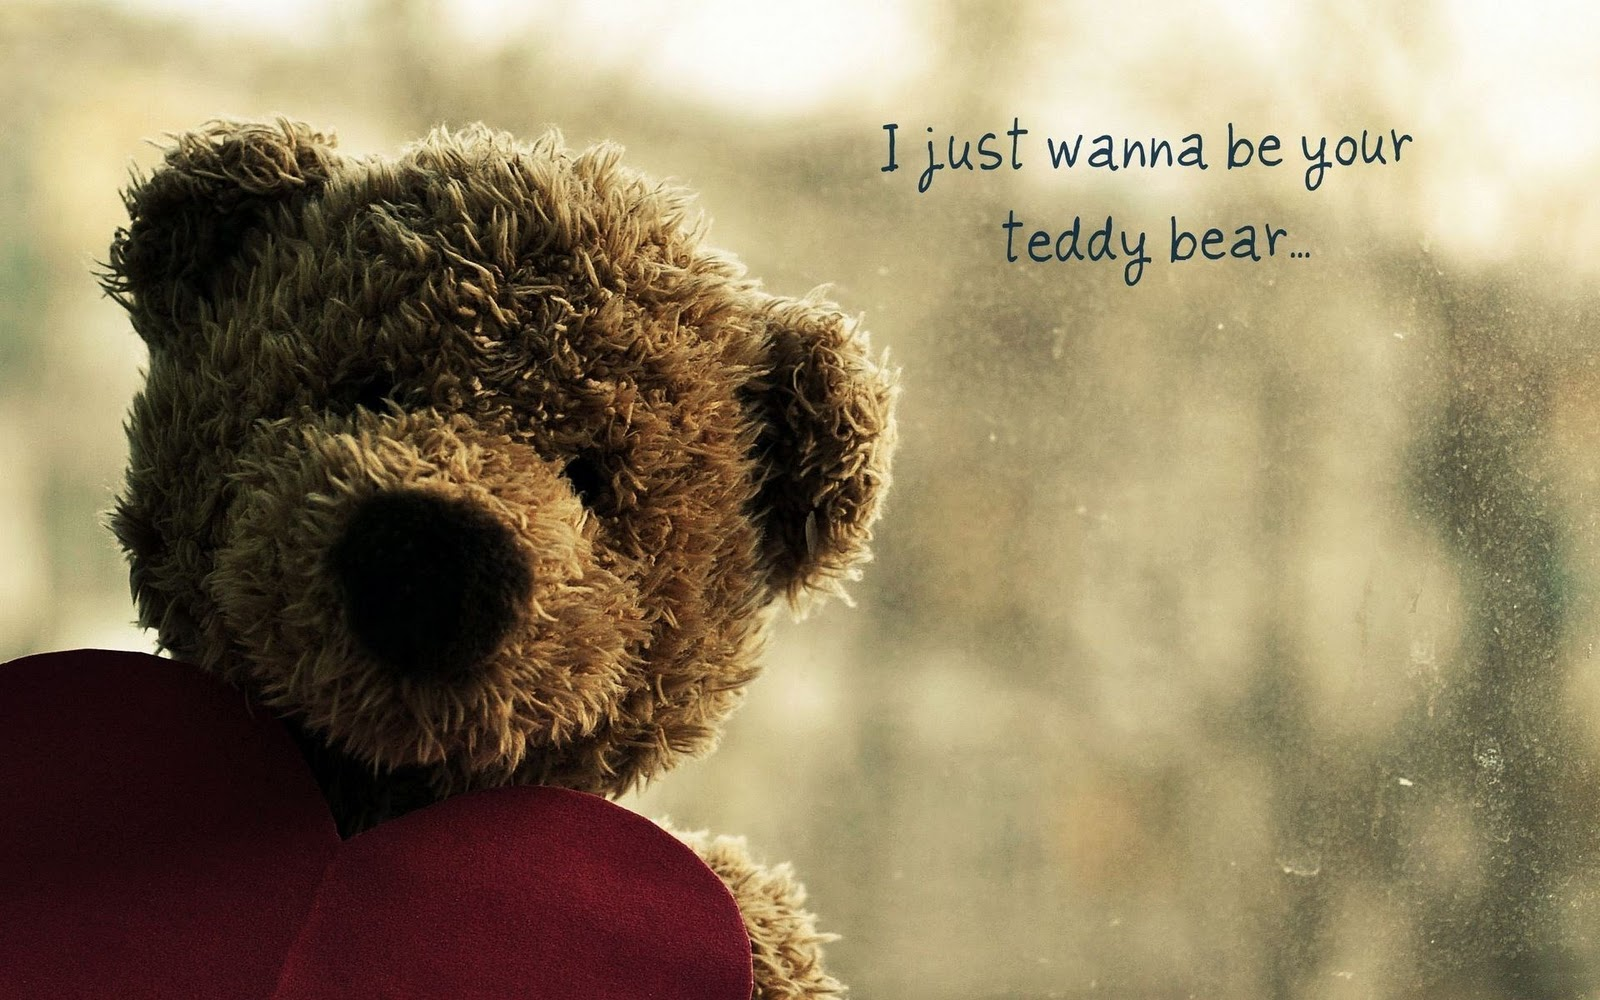 Love Teddy Wallpaper Hd : I Just Wanna Be Your Teddy Bear HD Wallpaper Love Wallpapers Romantic Wallpapers - Stock ...